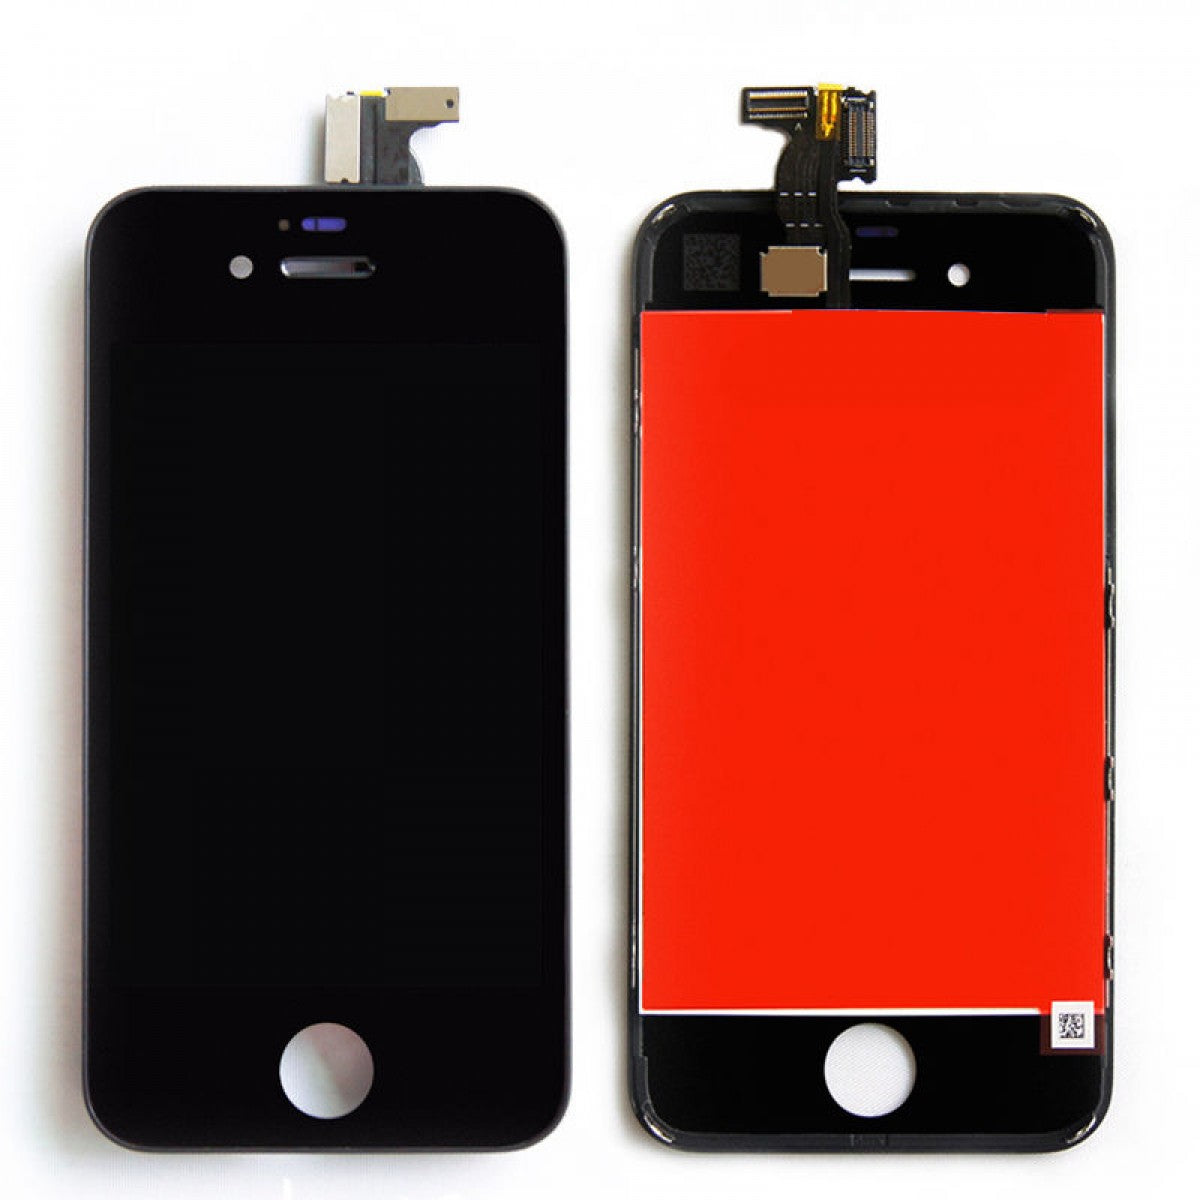 Apple iPhone 4S LCD DIGITIZERS COMBO (Black)